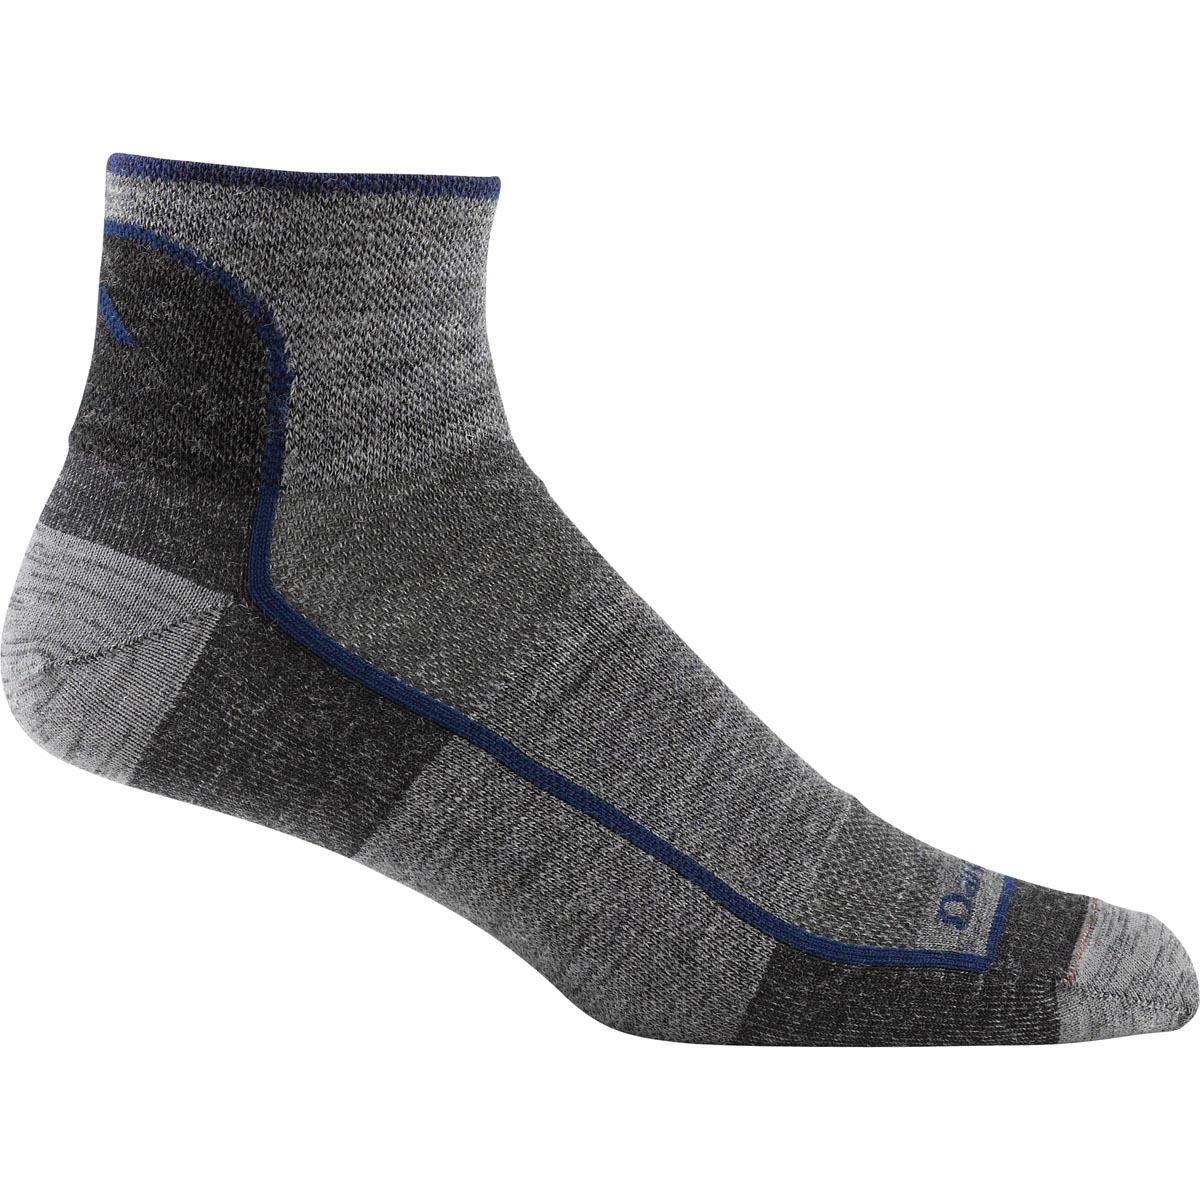 Darn Tough Vermont Men's Merino Wool Quarter Sock Ultra Light